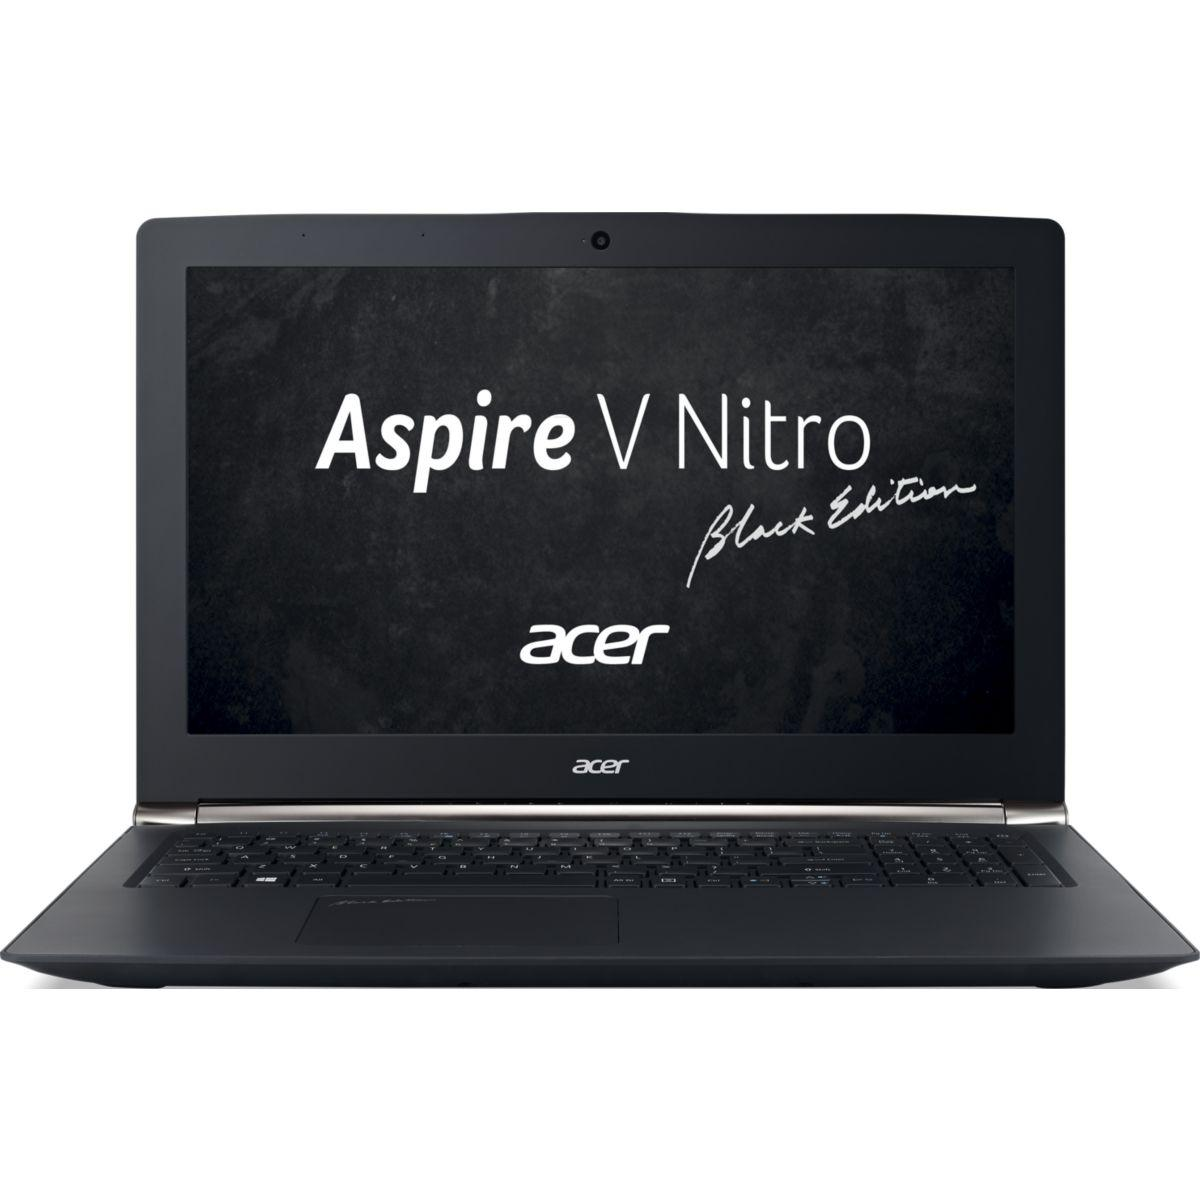 Pc portable acer aspire vn7-592g-54ty (photo)